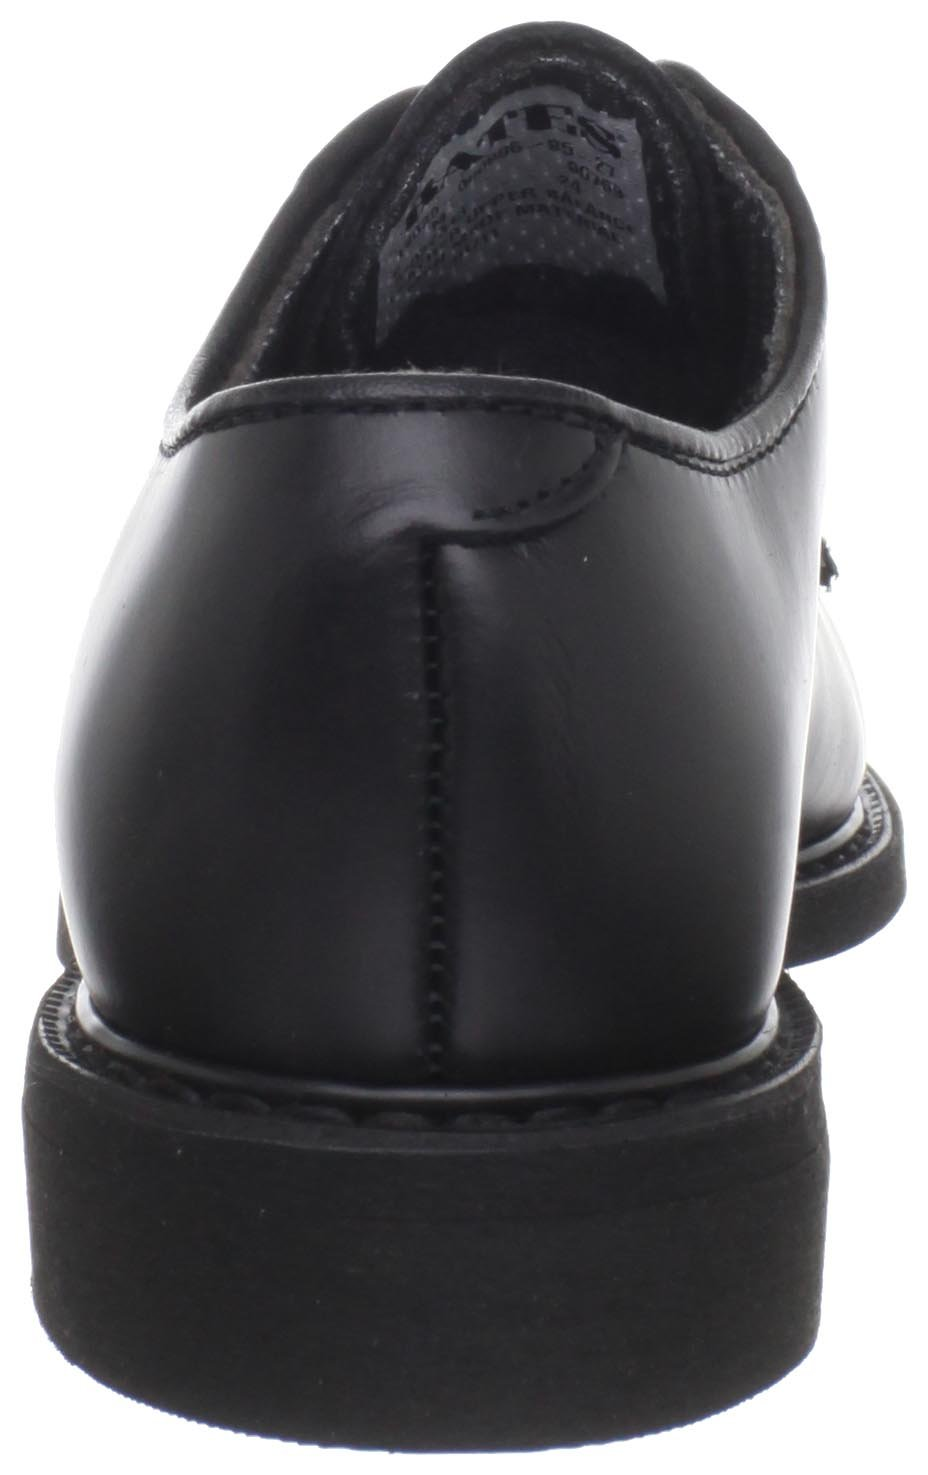 Bates Women's Leather Uniform Shoe B000G5TH44 6.5 M US|Black